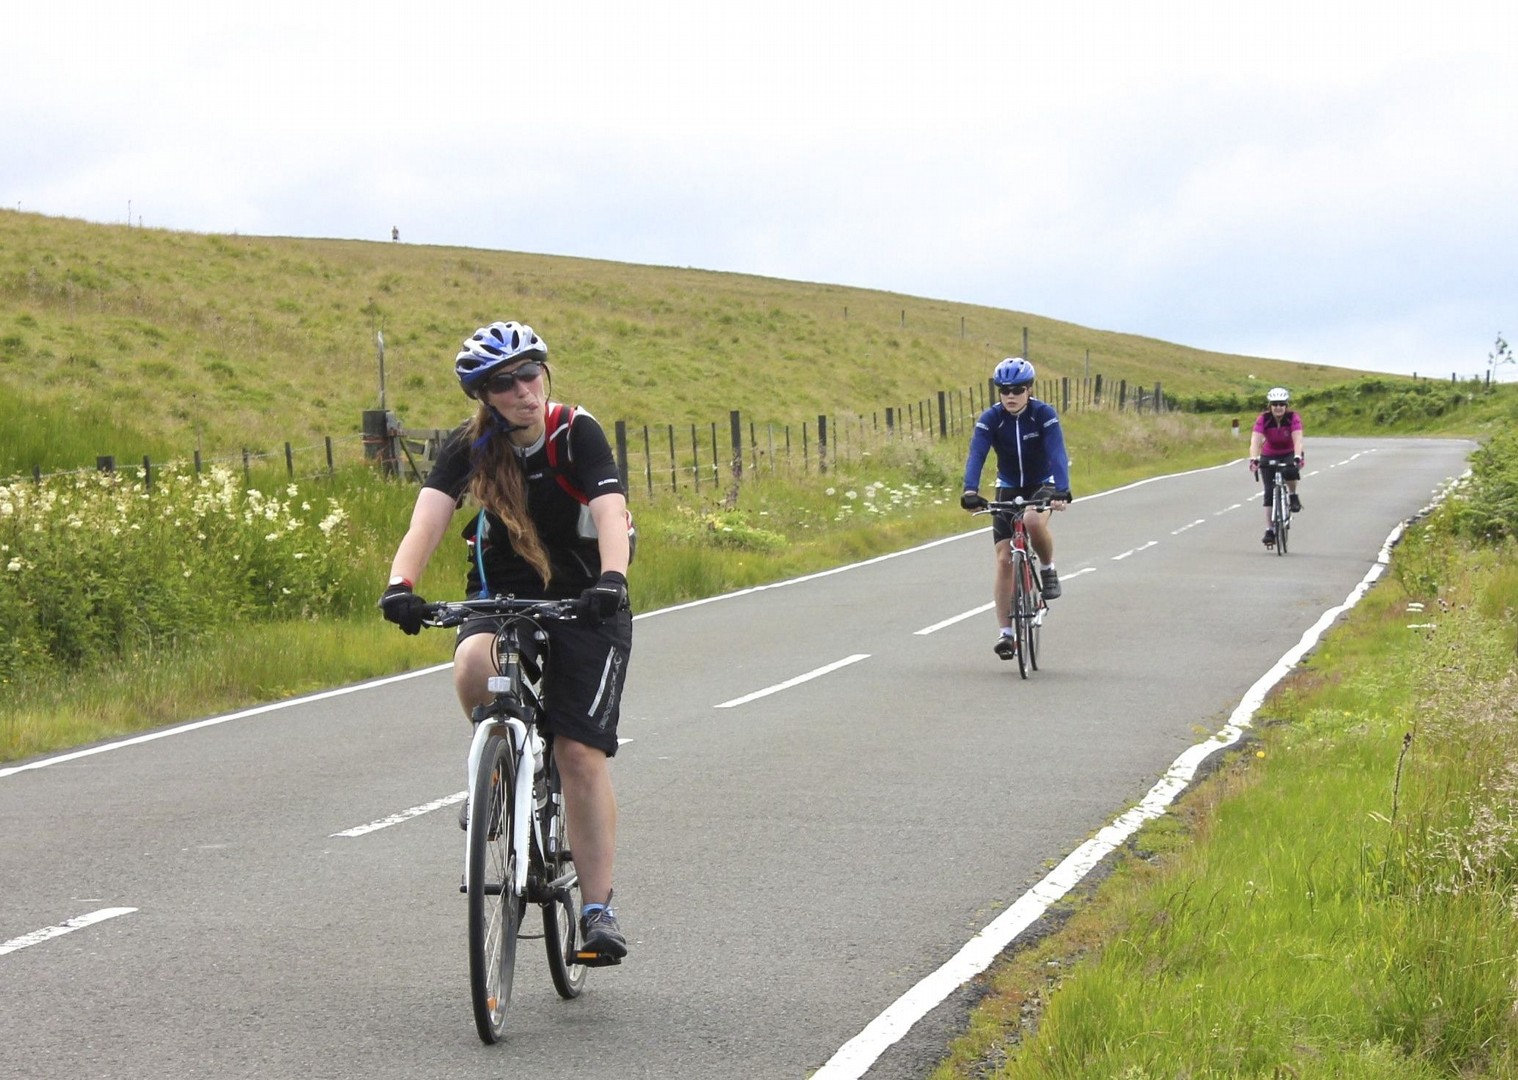 Coast&castles4.jpg - UK - Coast and Castles - Self-Guided Leisure Cycling Holiday - Leisure Cycling